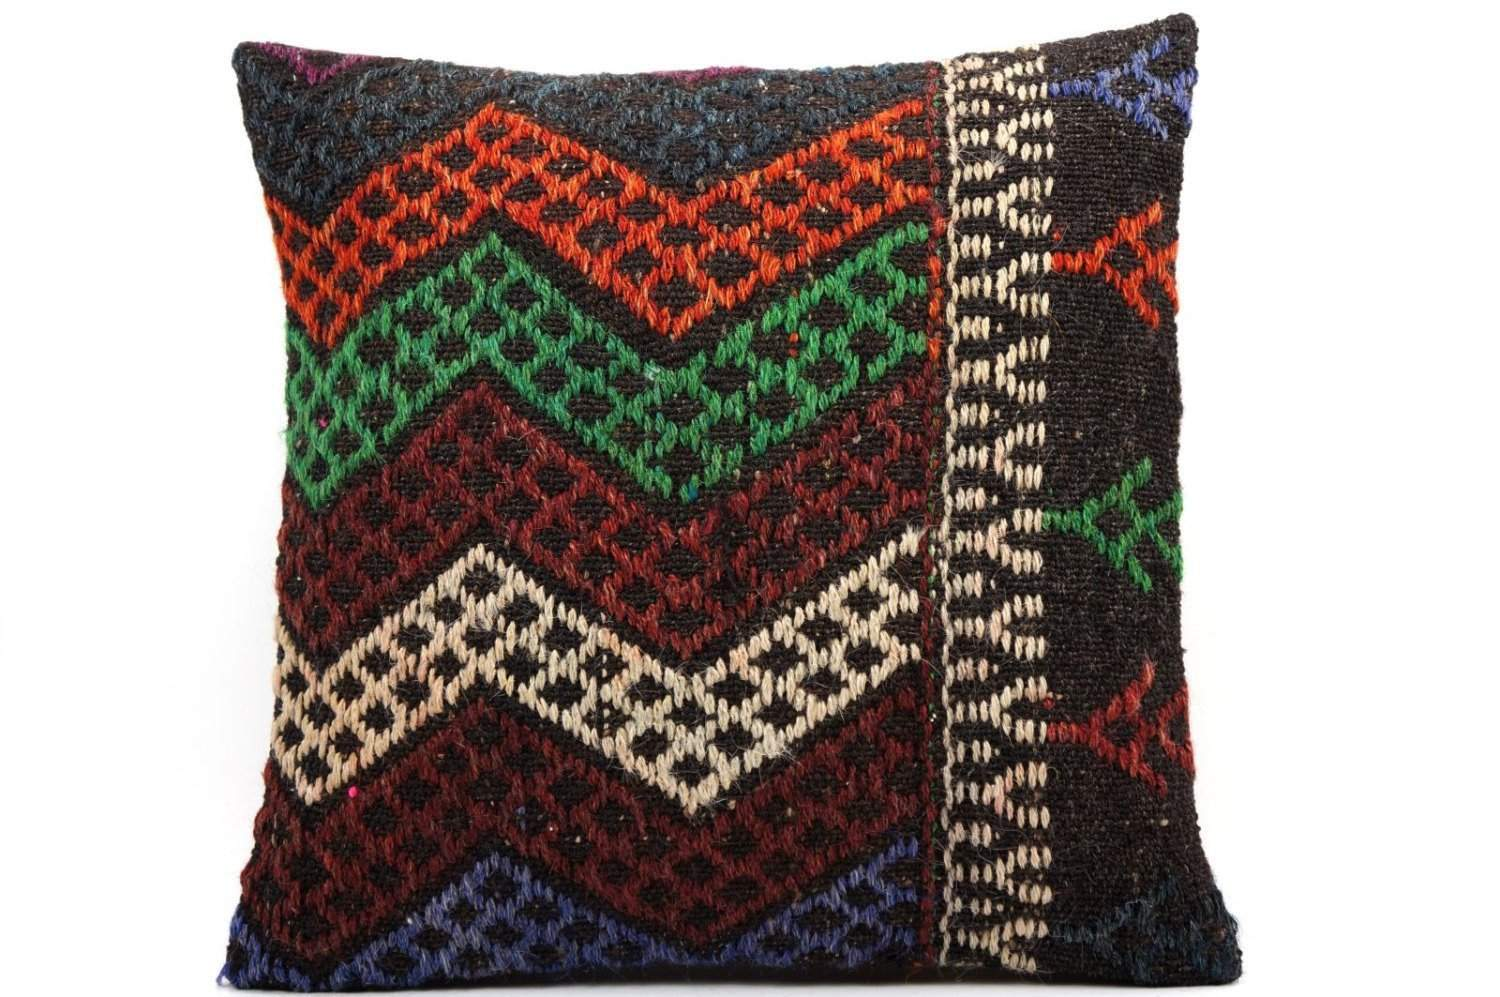 16x16 Vintage Hand Woven Kilim Pillow 493,white,green,blue,black,red,claret red,chevron